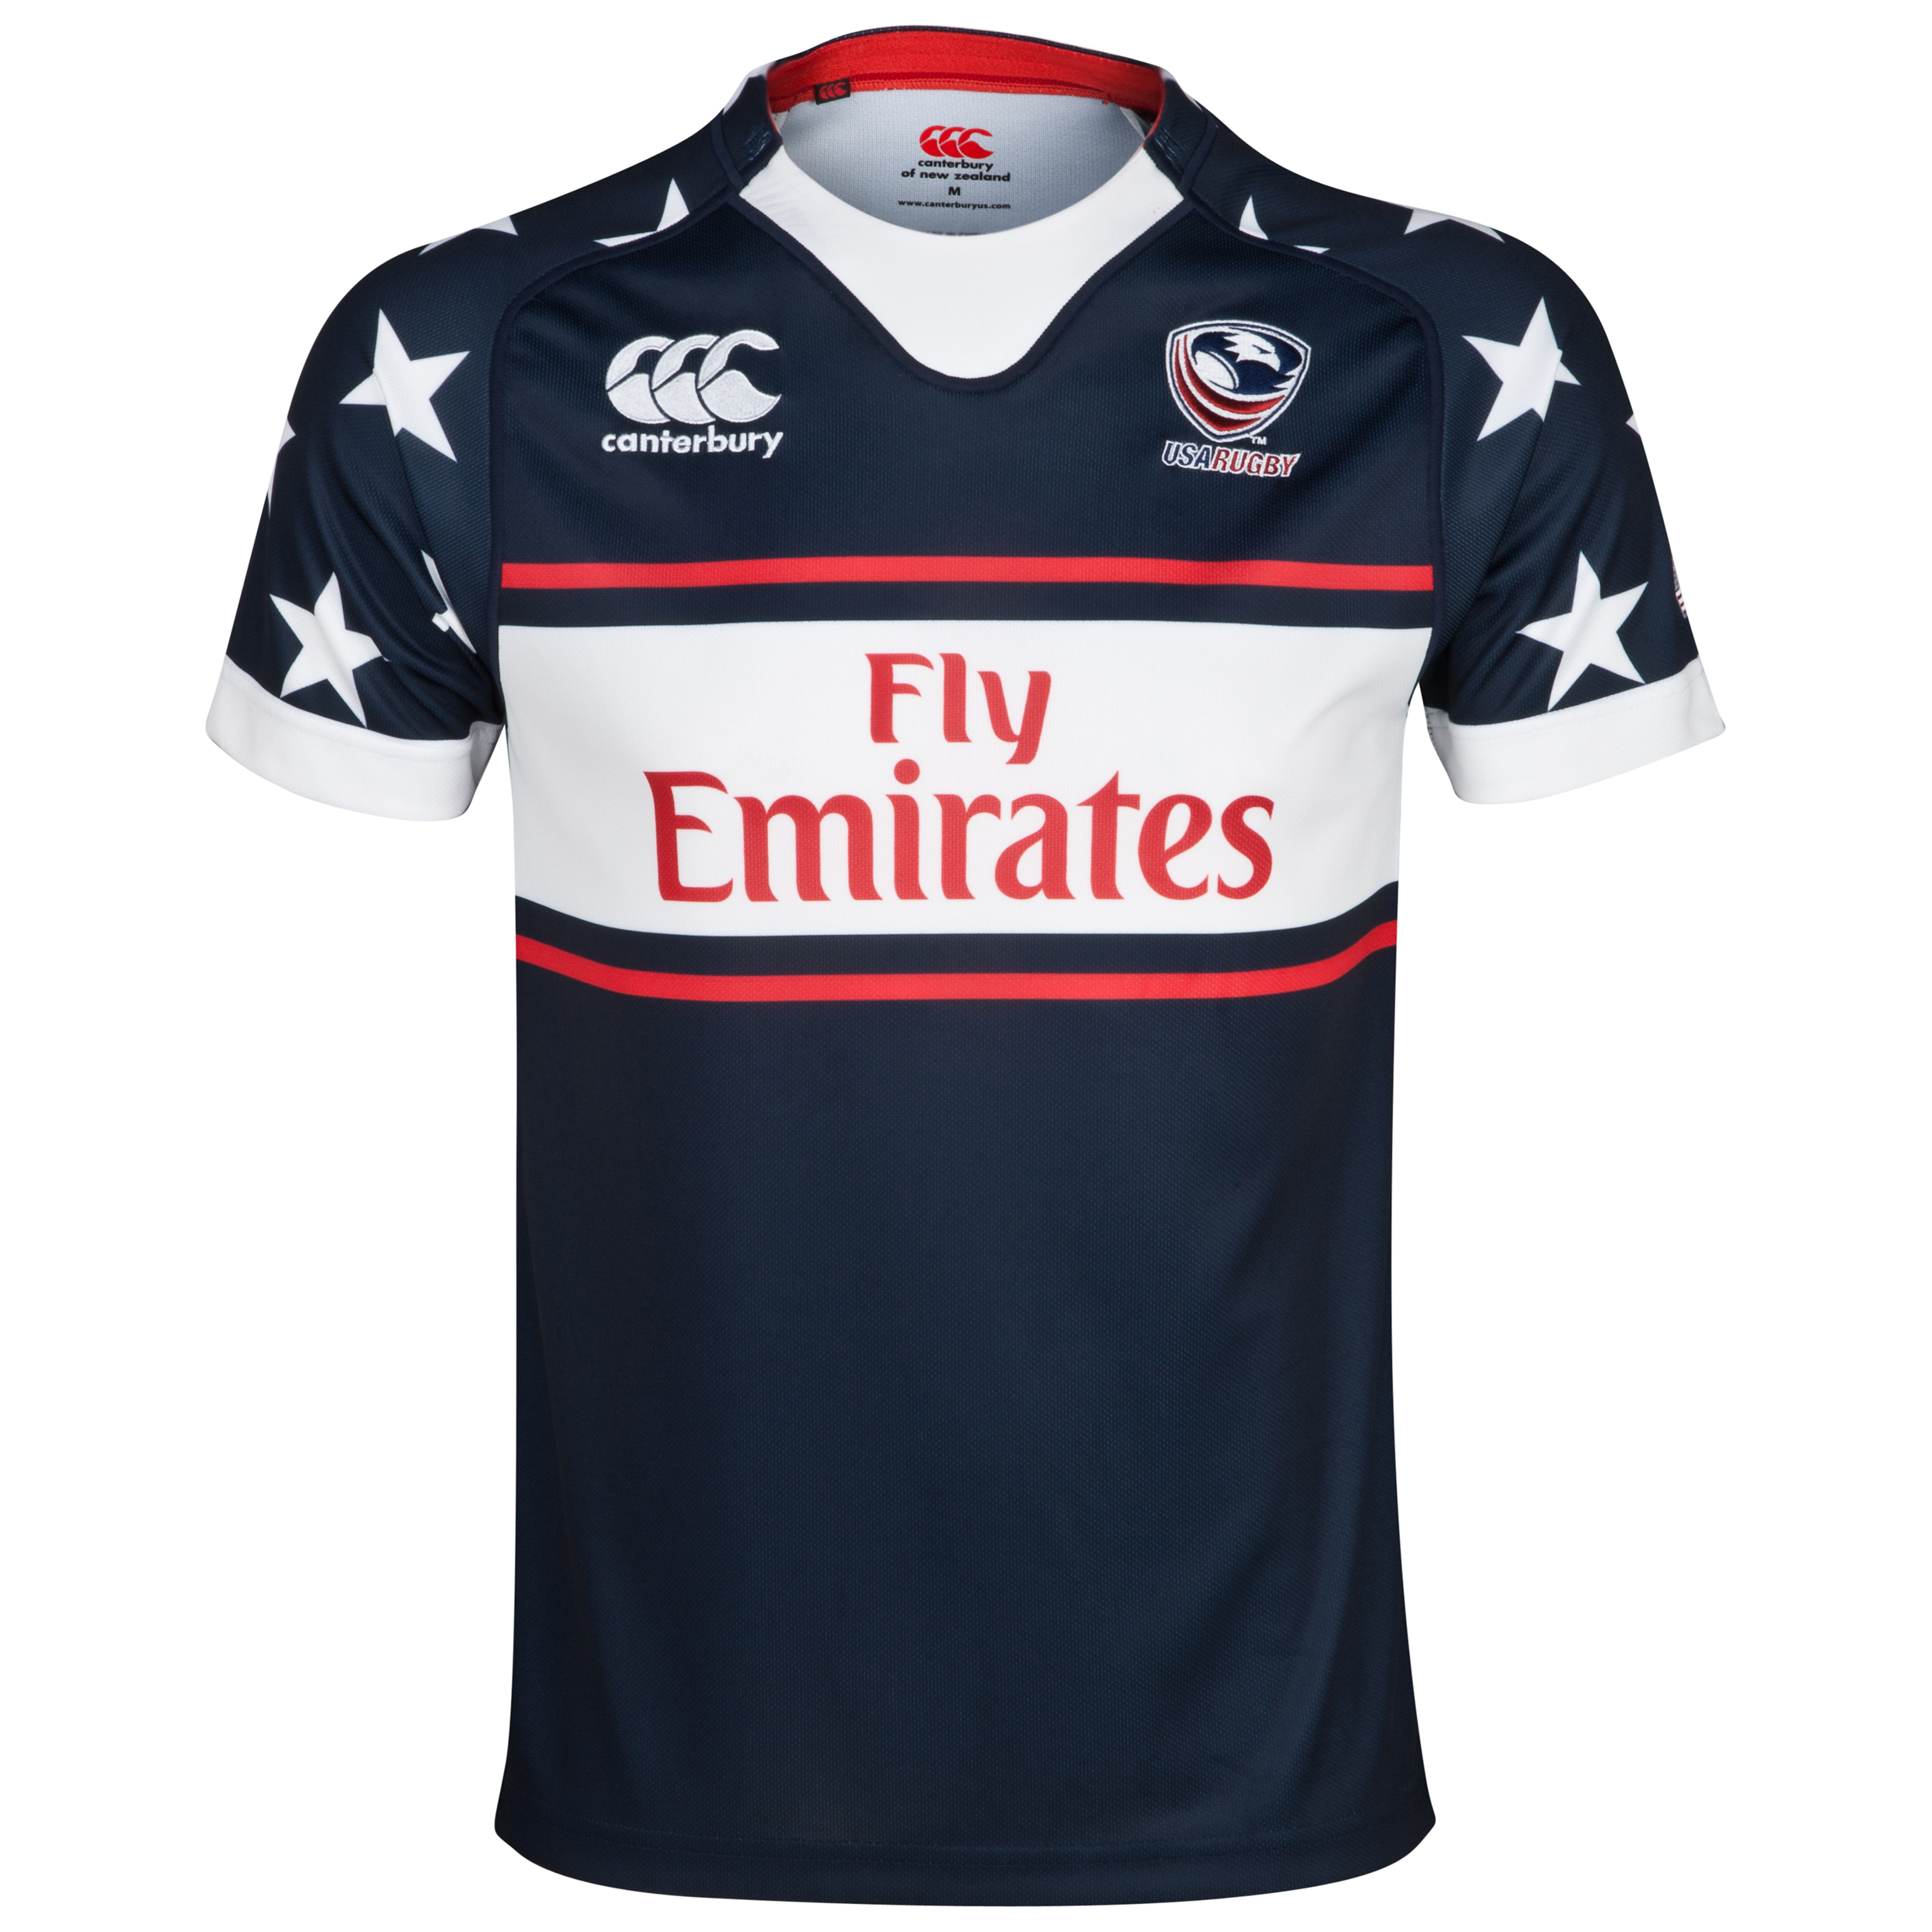 USA Eagles Alternate Sevens Rugby Pro Shirt 2013/14